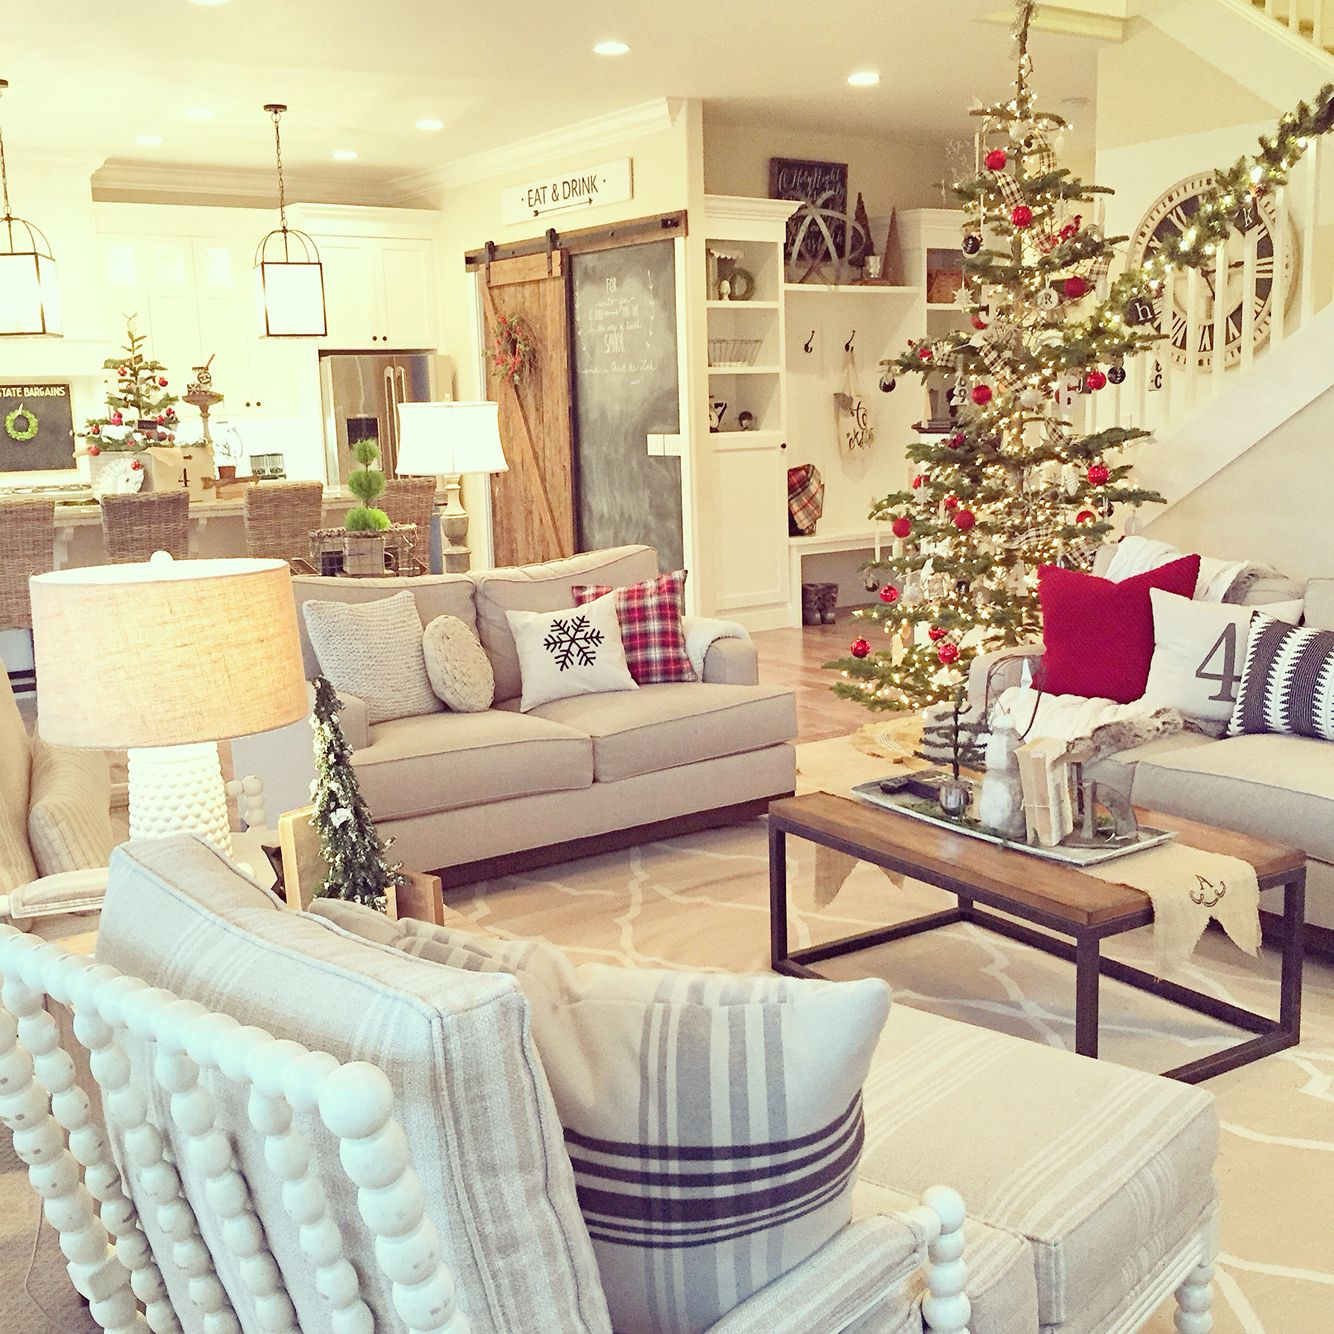 neutral pops of red for a farmhouse christmas interior design by janna allbritton of yellow prairie interior design - A Farmhouse Christmas